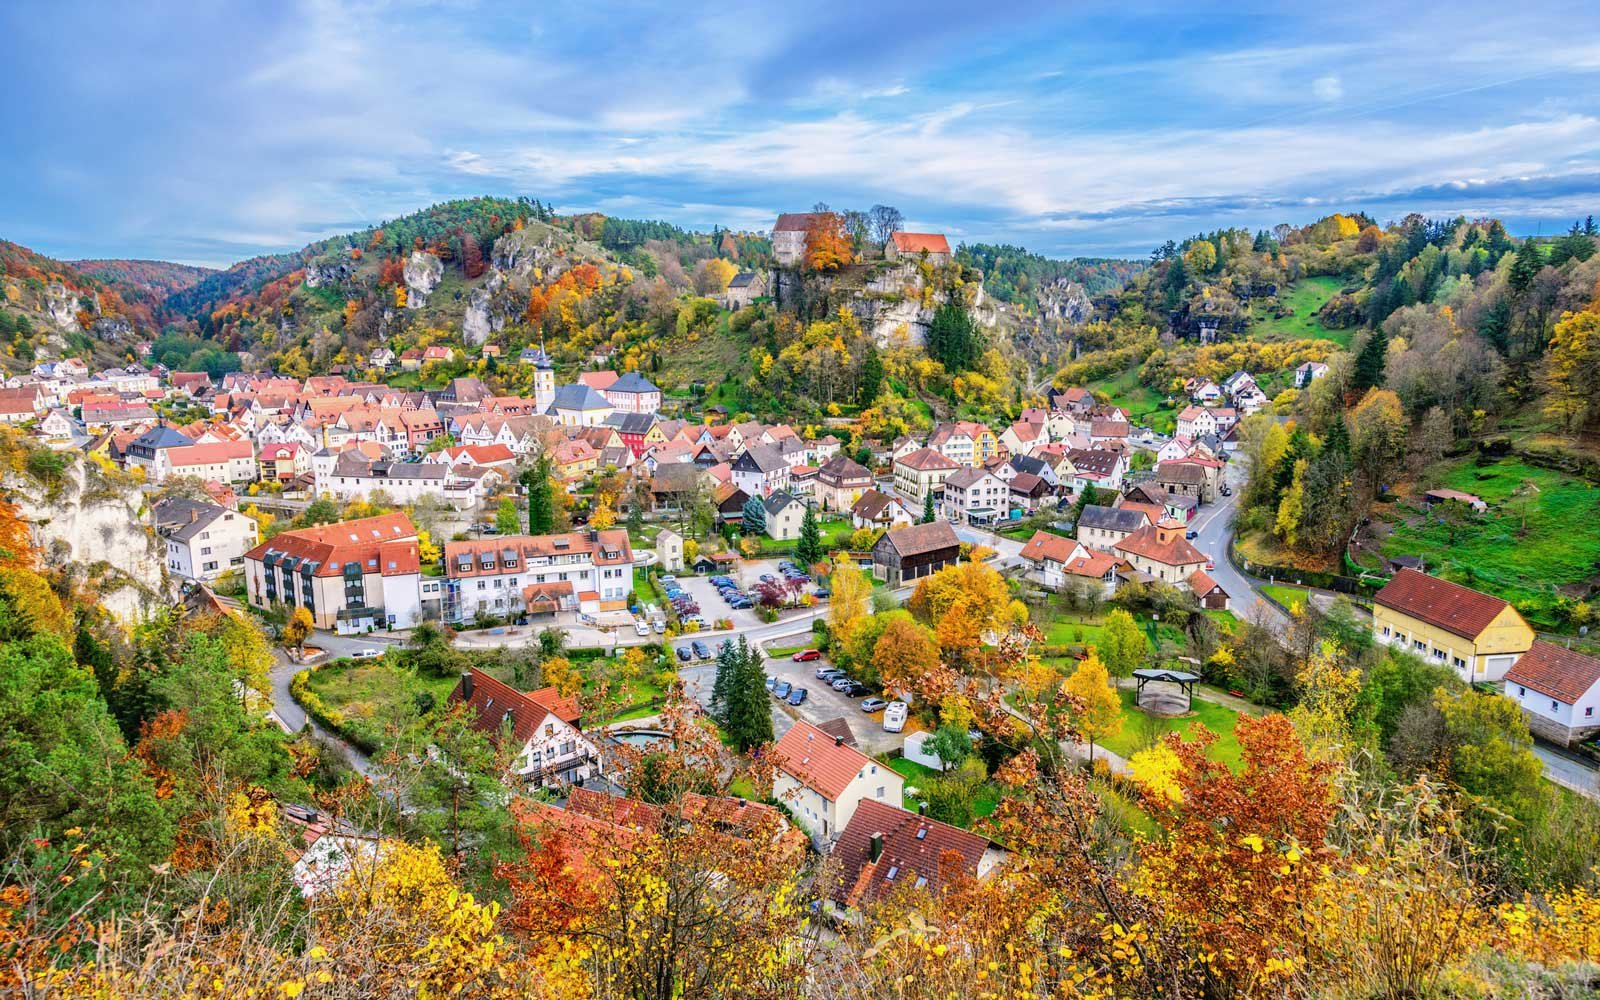 Bayreuth, in the scenic Franconian Switzerland (Bavaria, Germany)